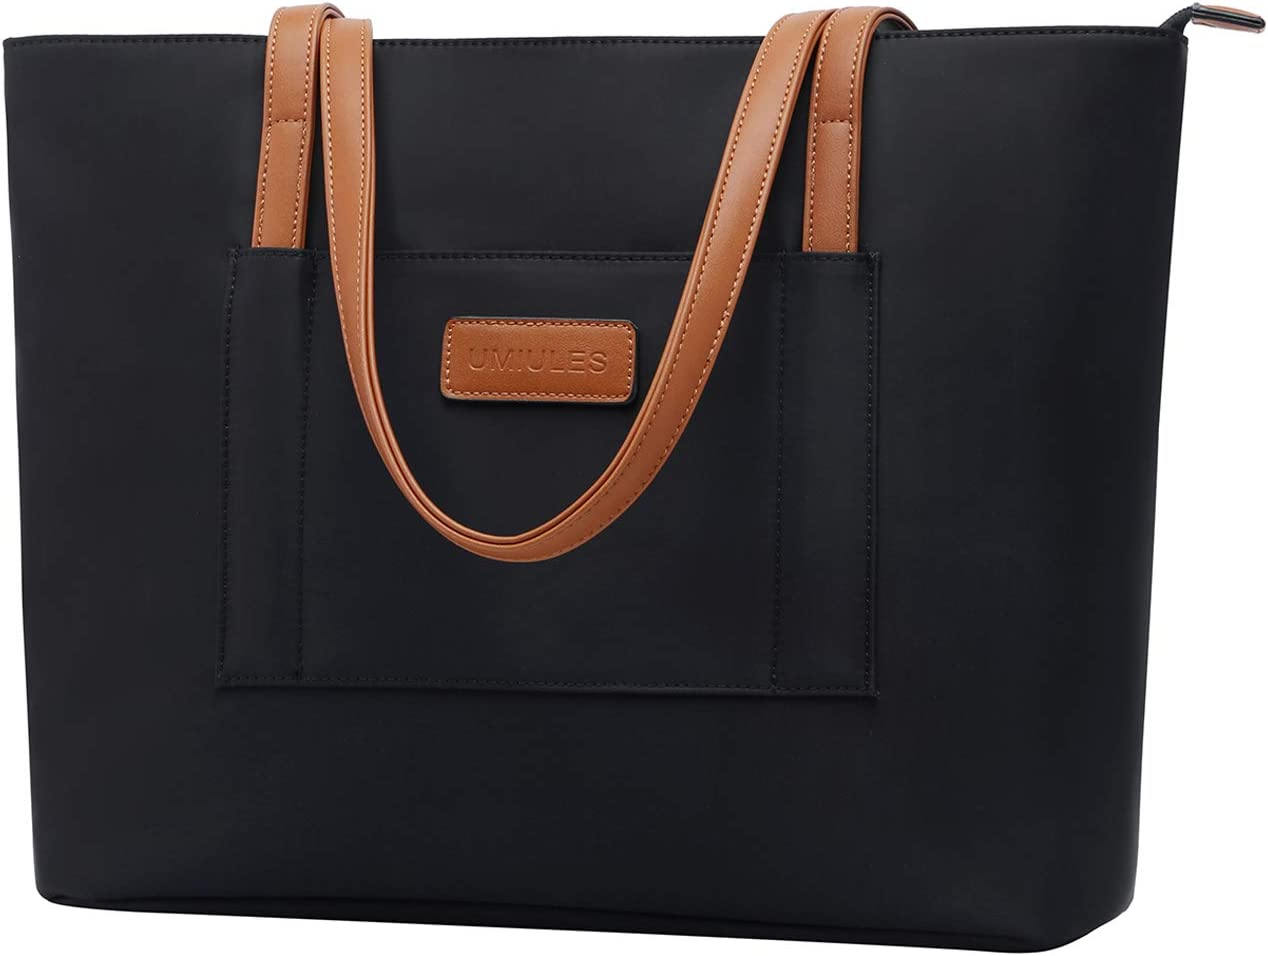 UMIULES Laptop-Bag-for-Women,13-15.6 Inch Nylon Laptop-Tote-Bag Lightweight Briefcase Multi-compartment Teacher-Bag Business Work-Purse with Dual Shoulder Straps for Work School Travel Shopping,black